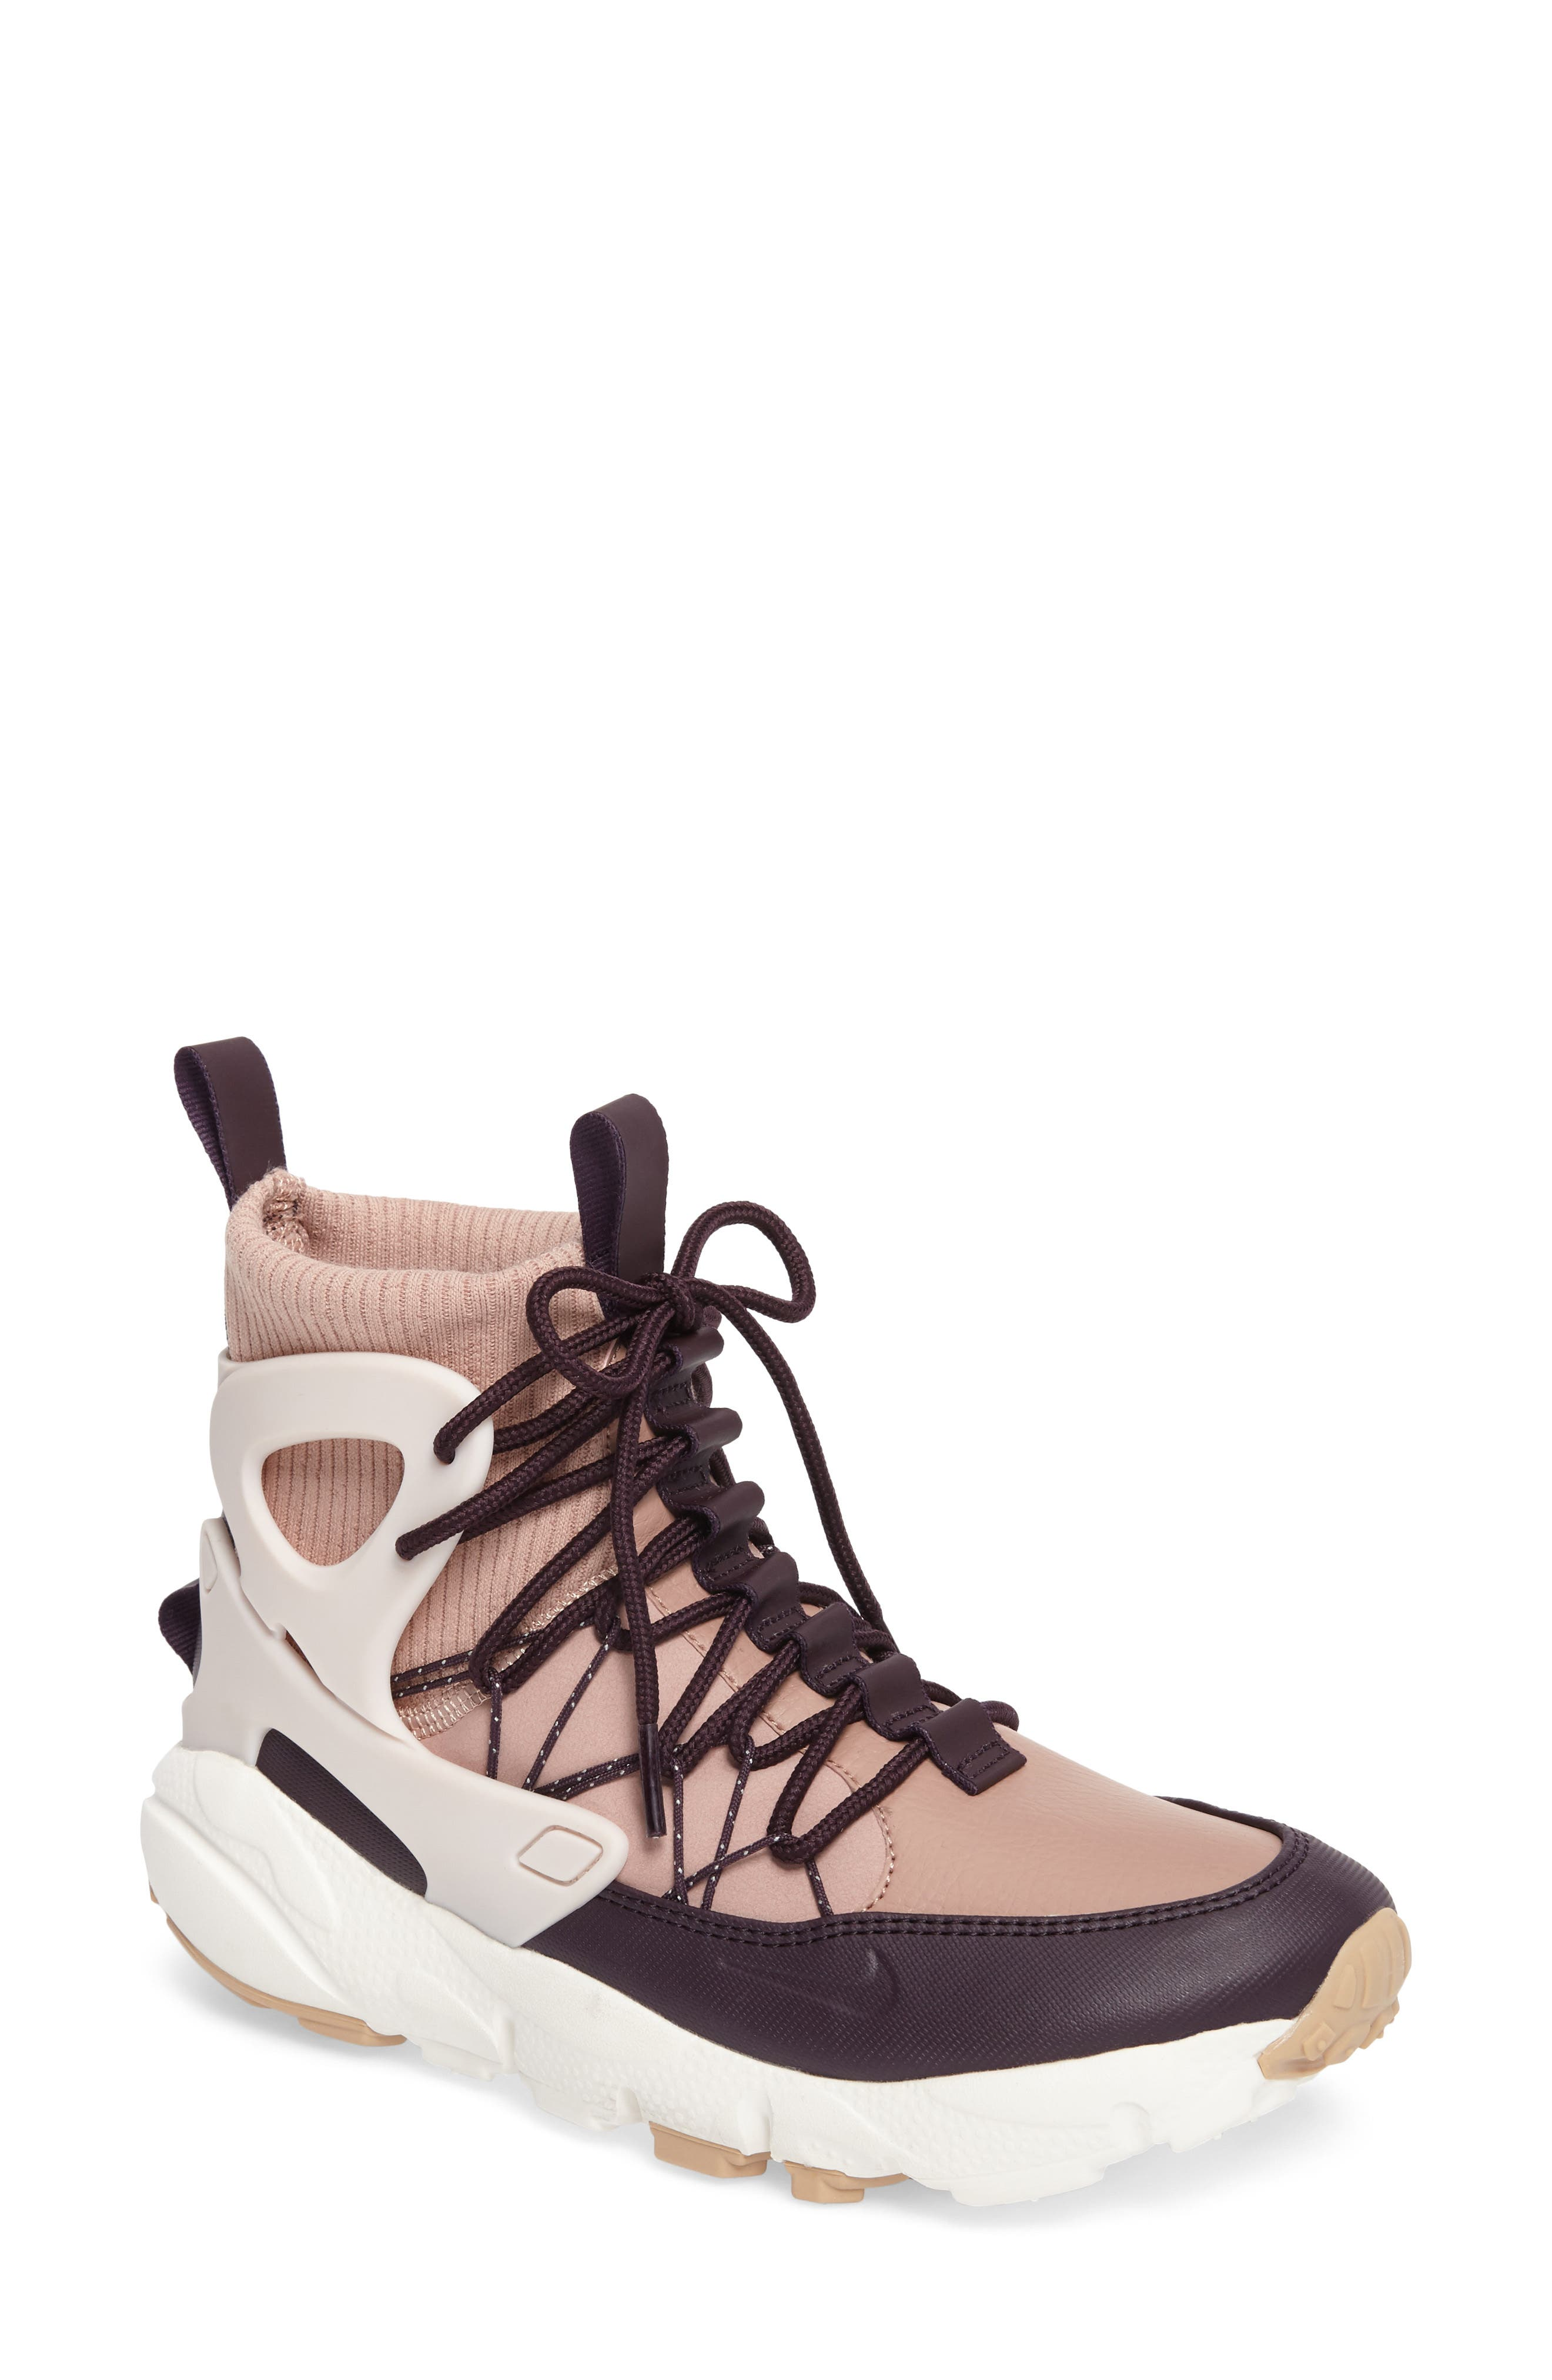 Nike Air Footscape Mid Sneaker Boot (Women)